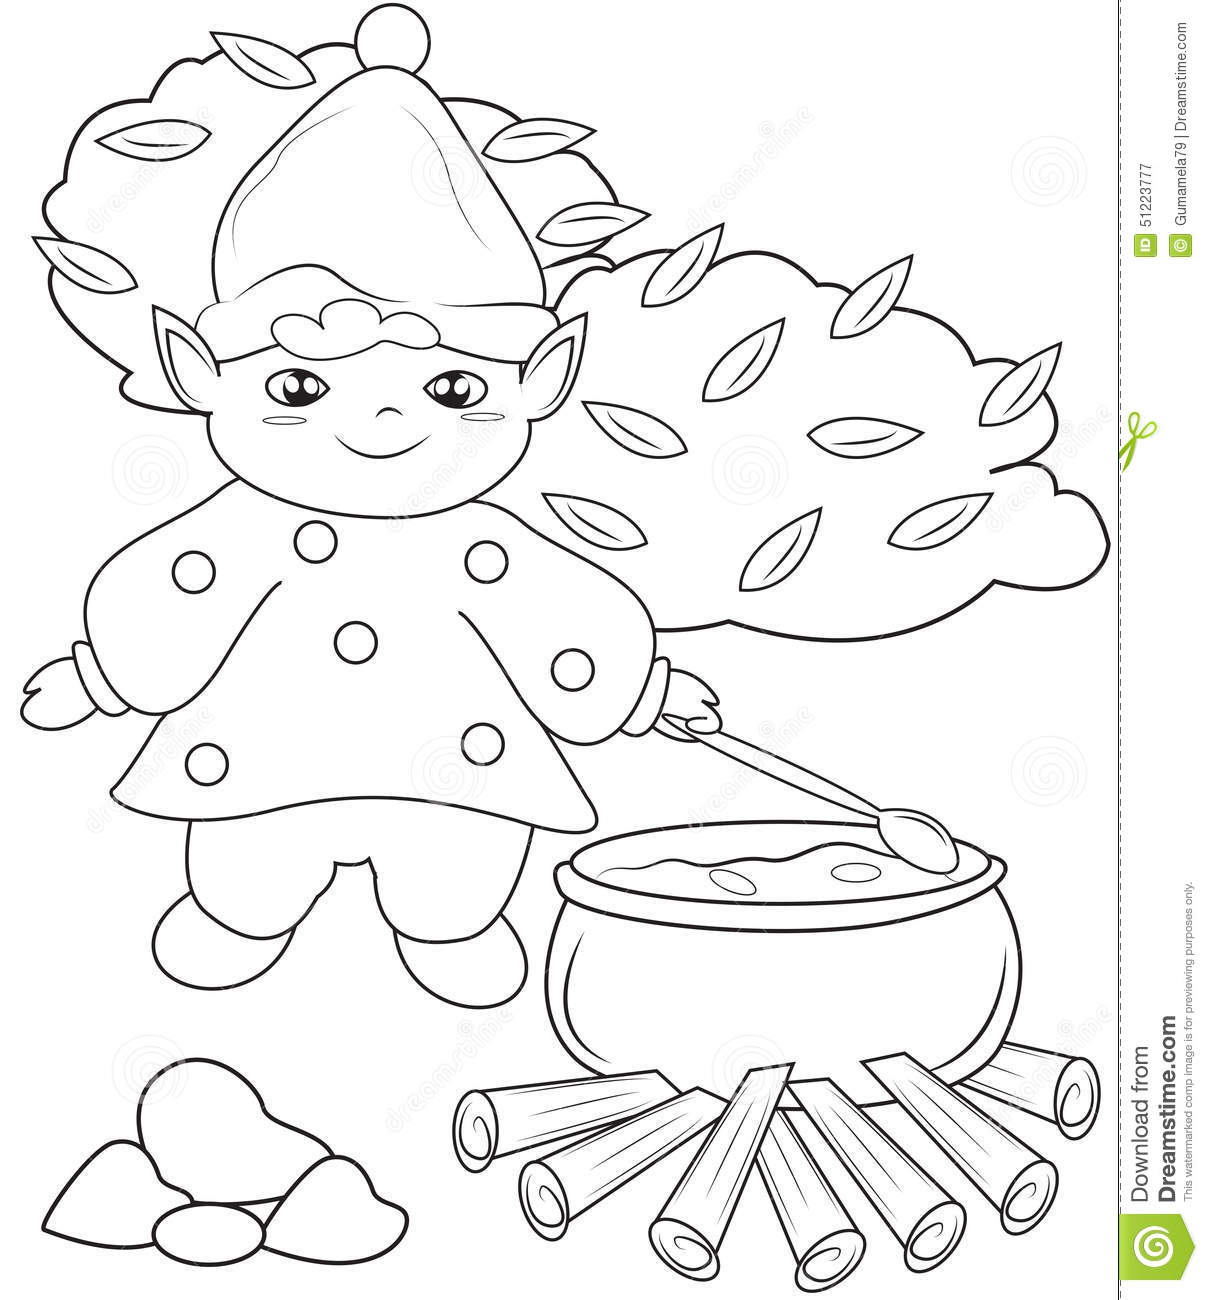 Chef Tools Coloring Page